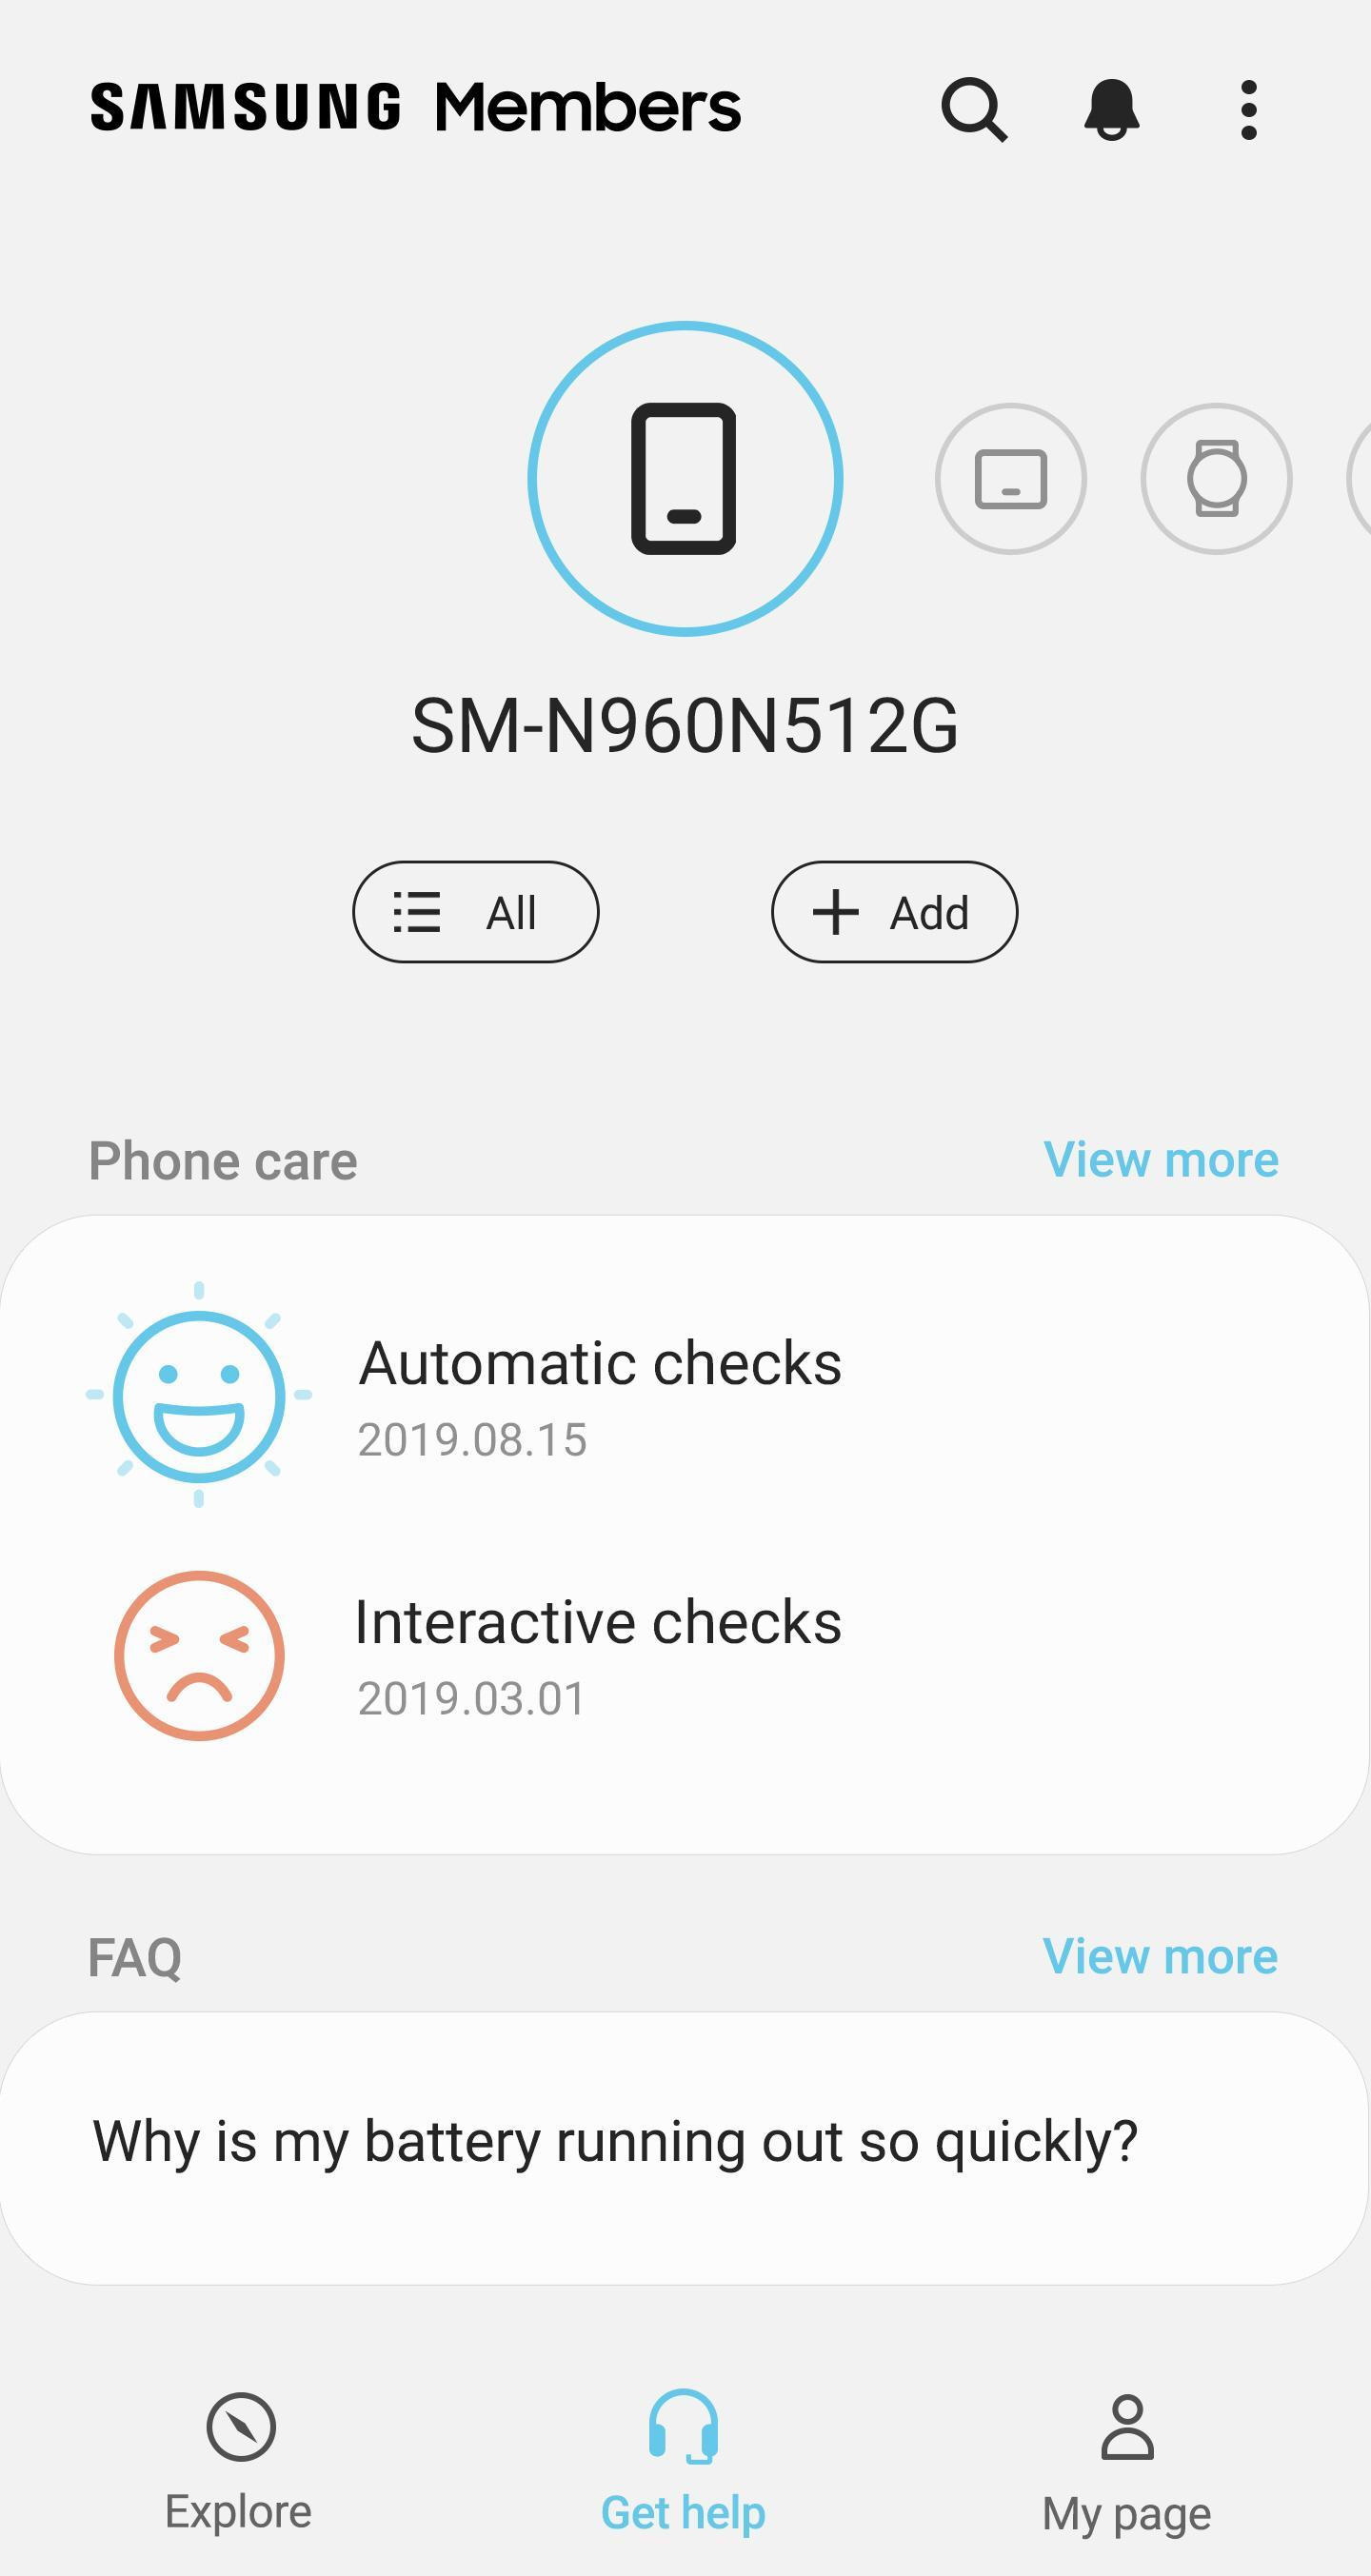 Samsung Members for Android - APK Download